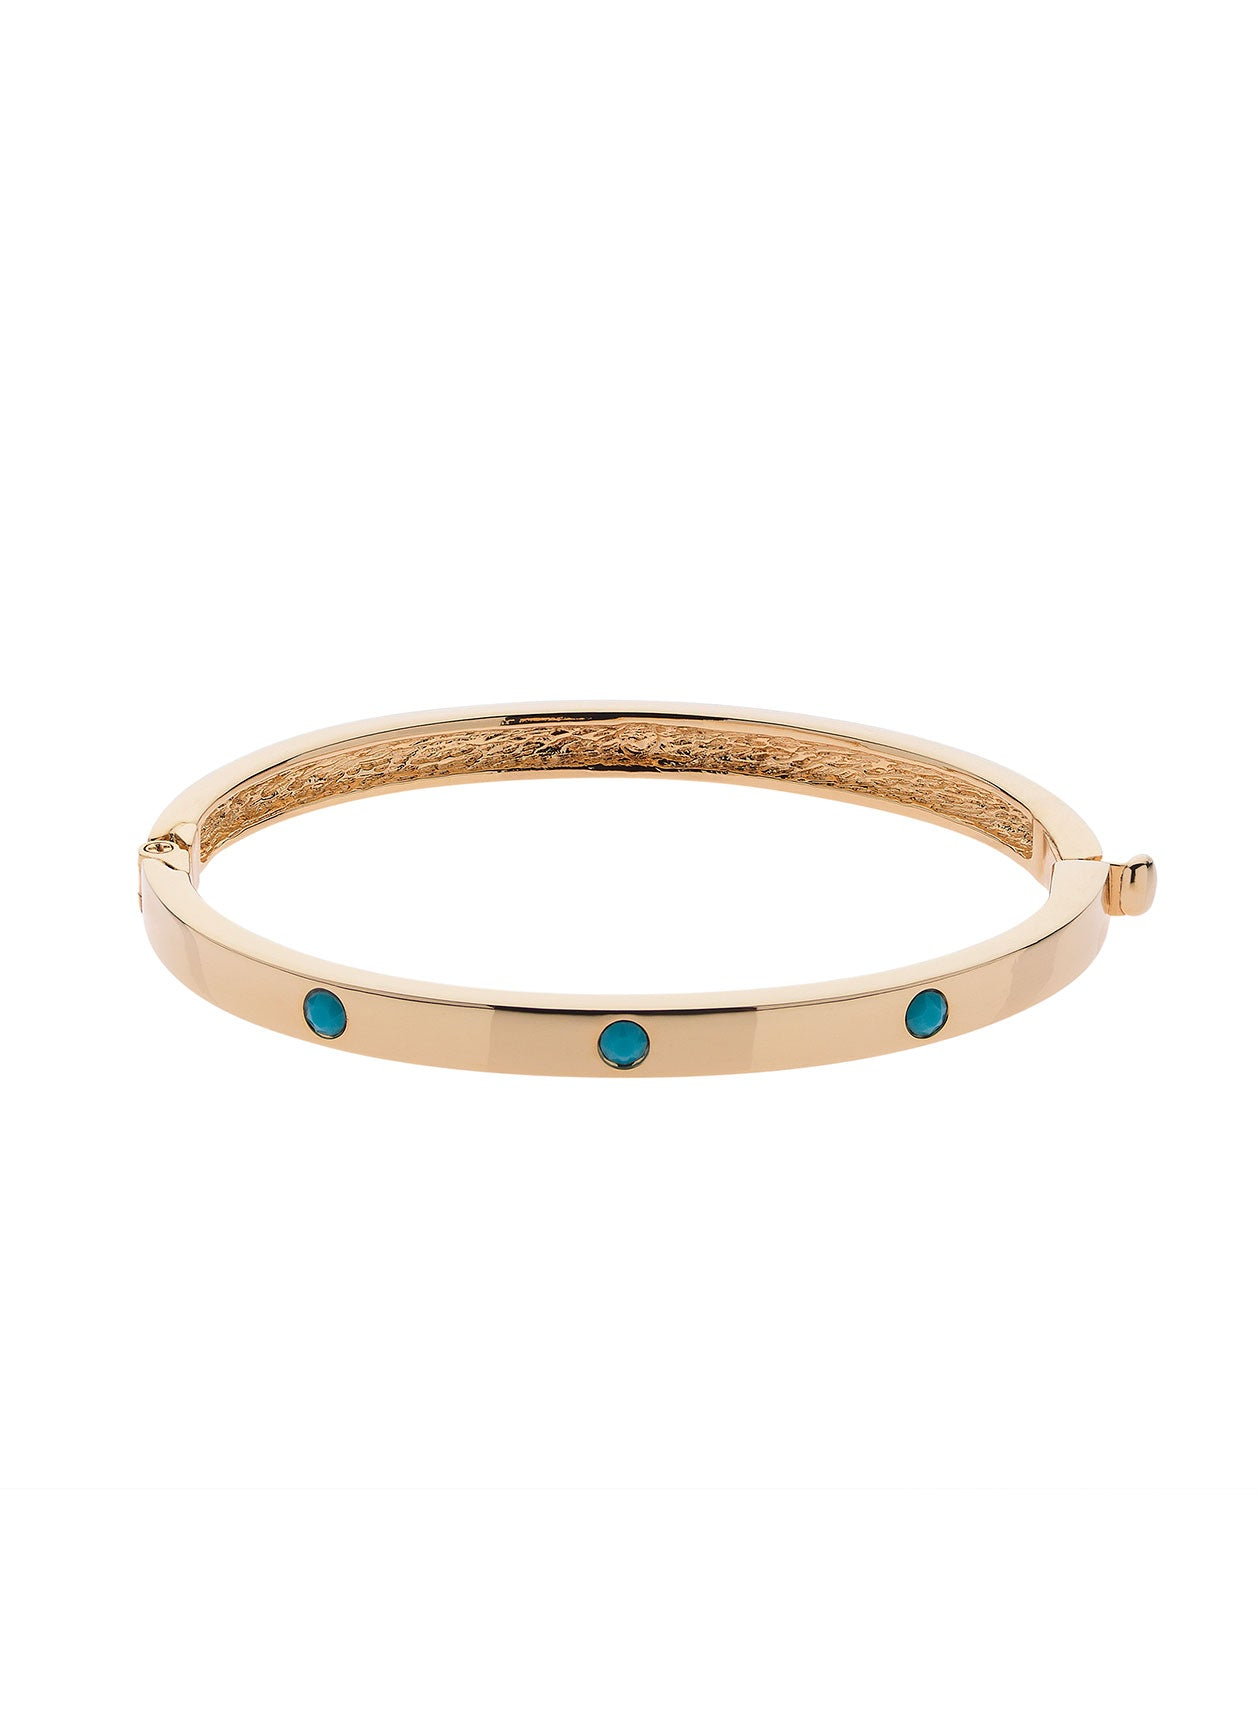 Gold Turquoise Bangle